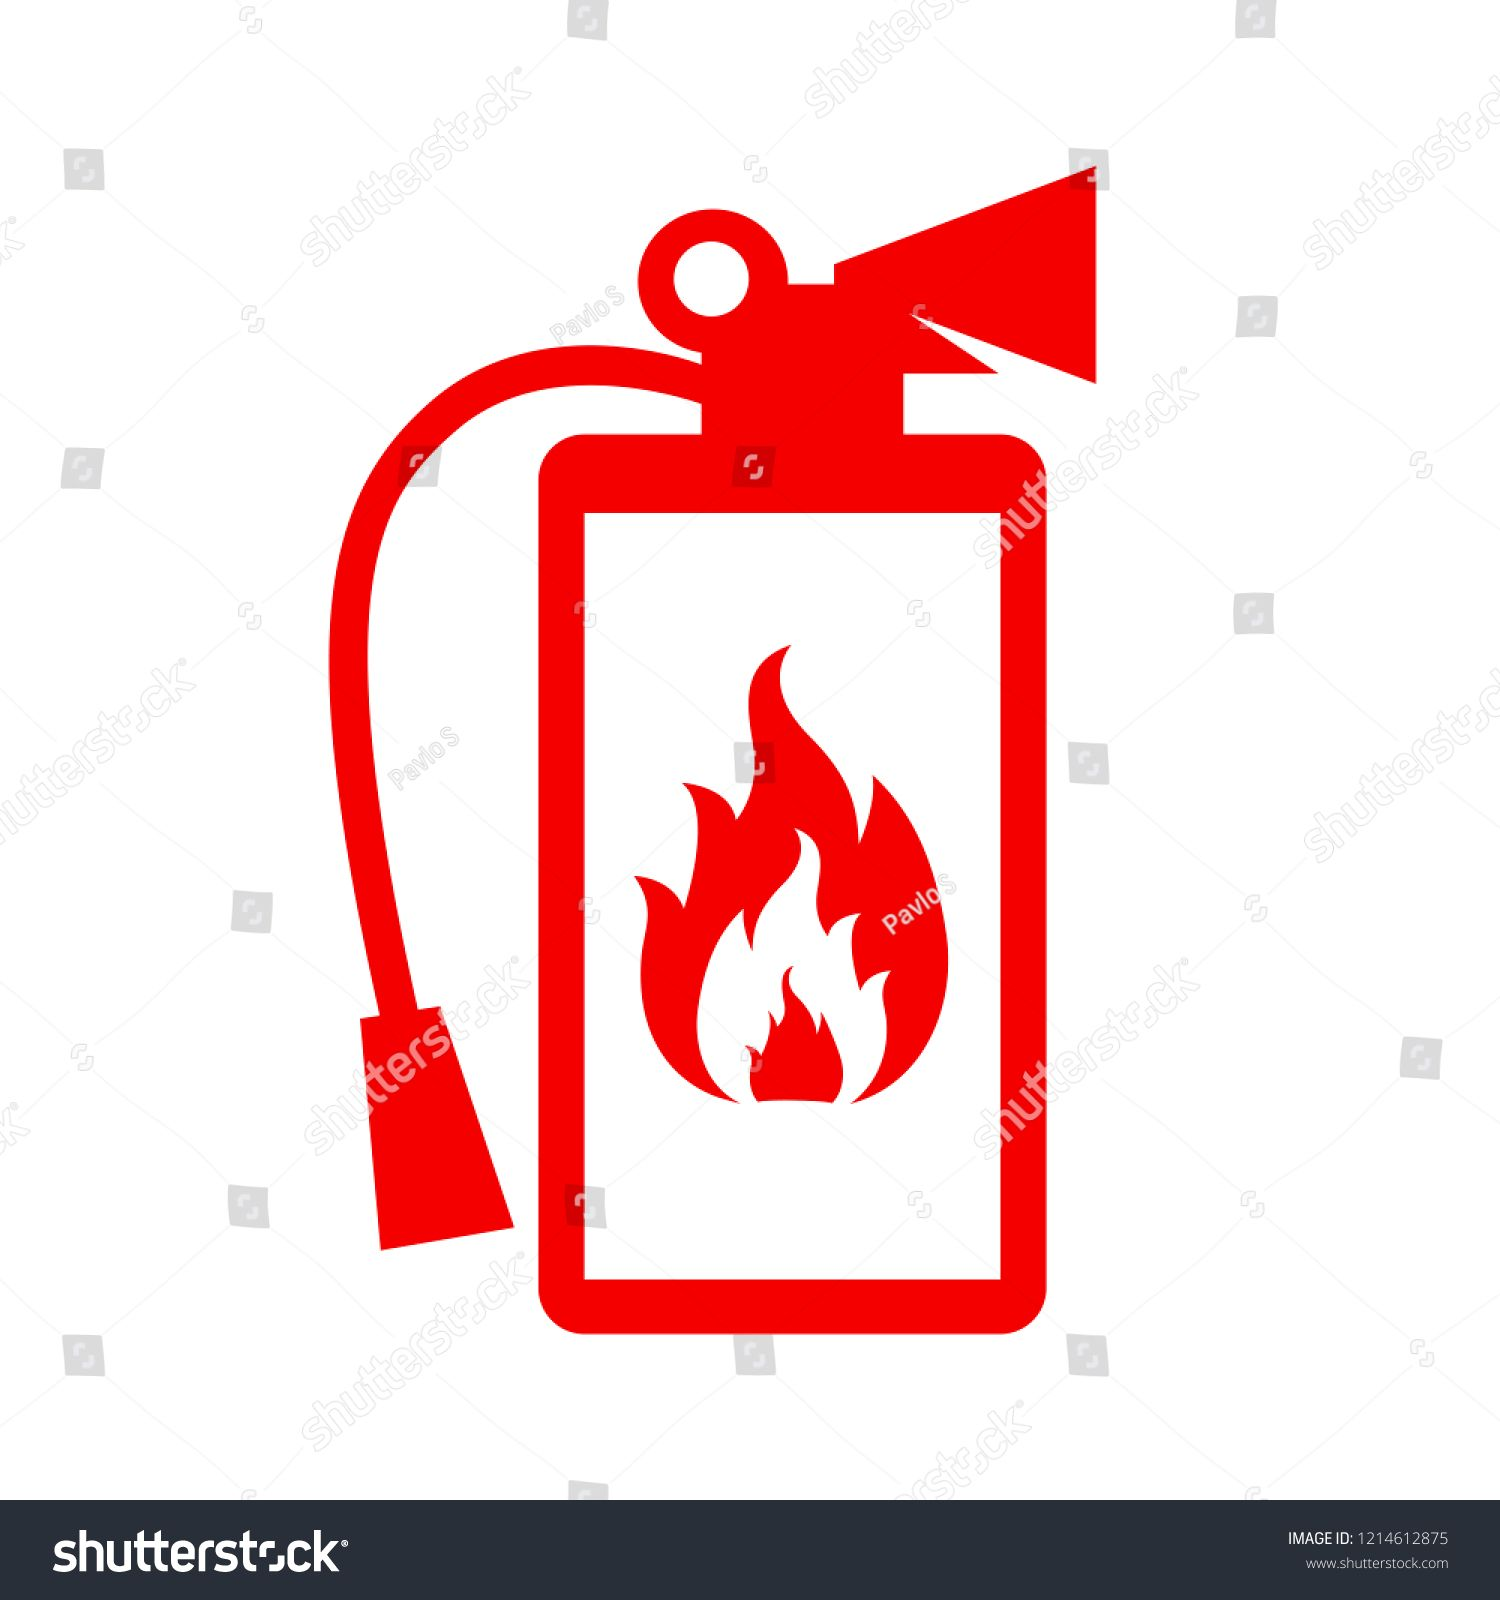 Fire extinguisher icon. Flat fire safety for stock icon